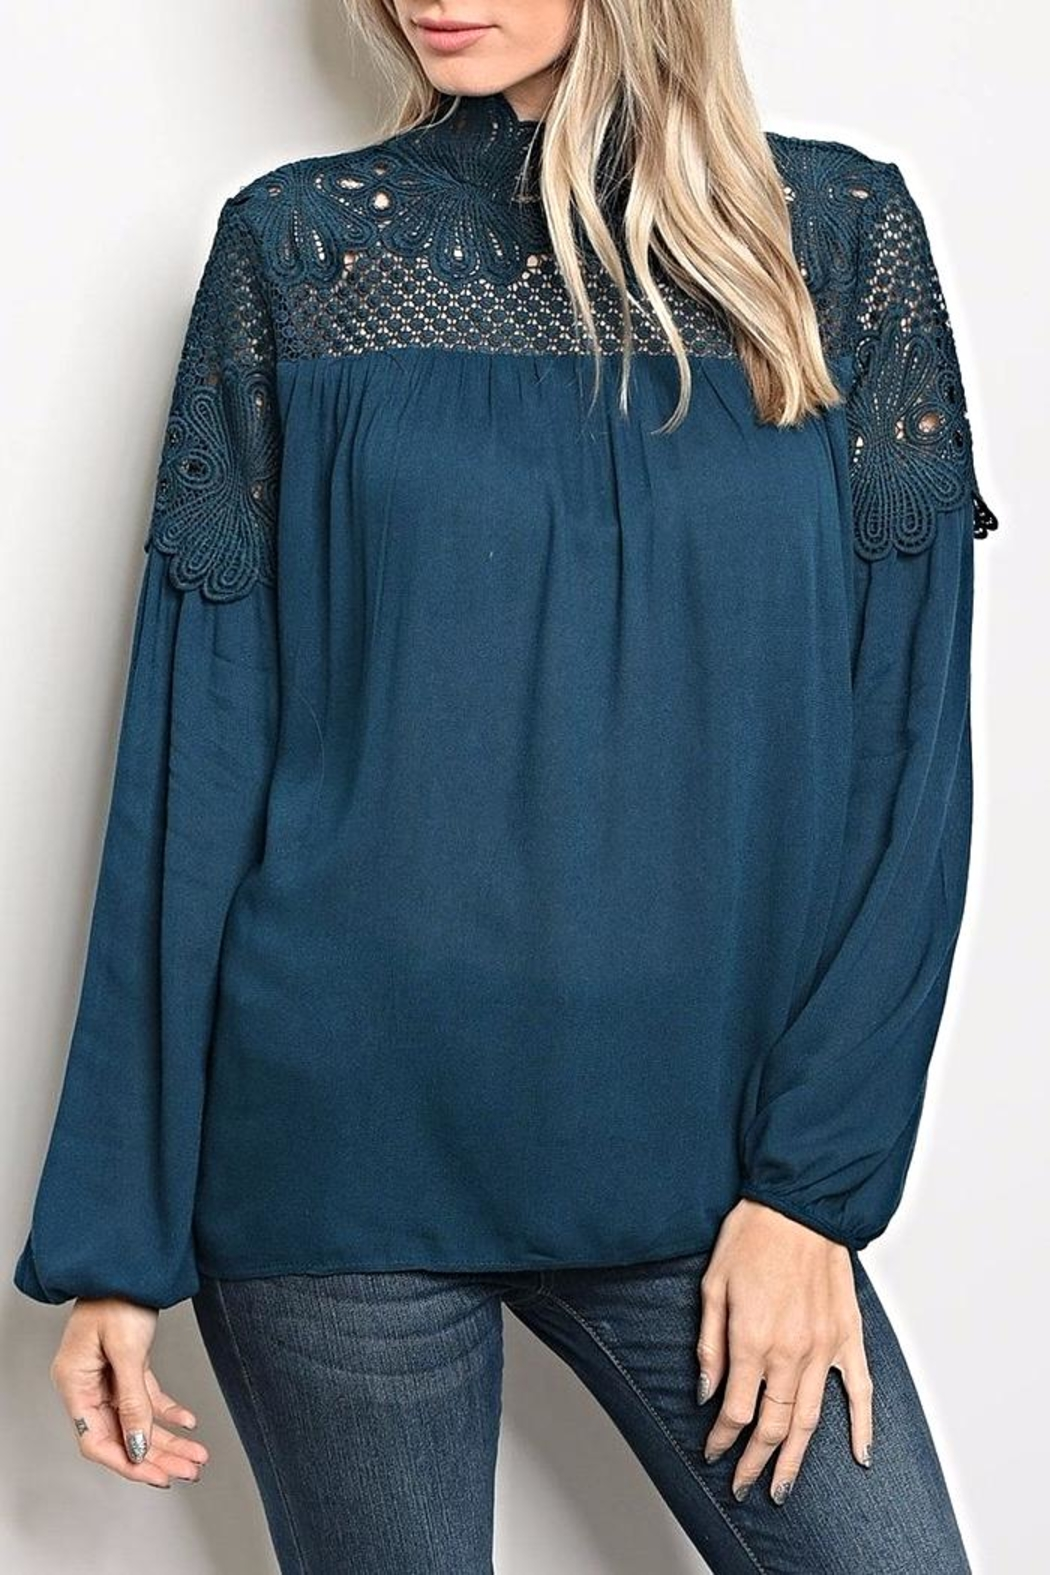 LoveRiche Teal Blouse - Main Image